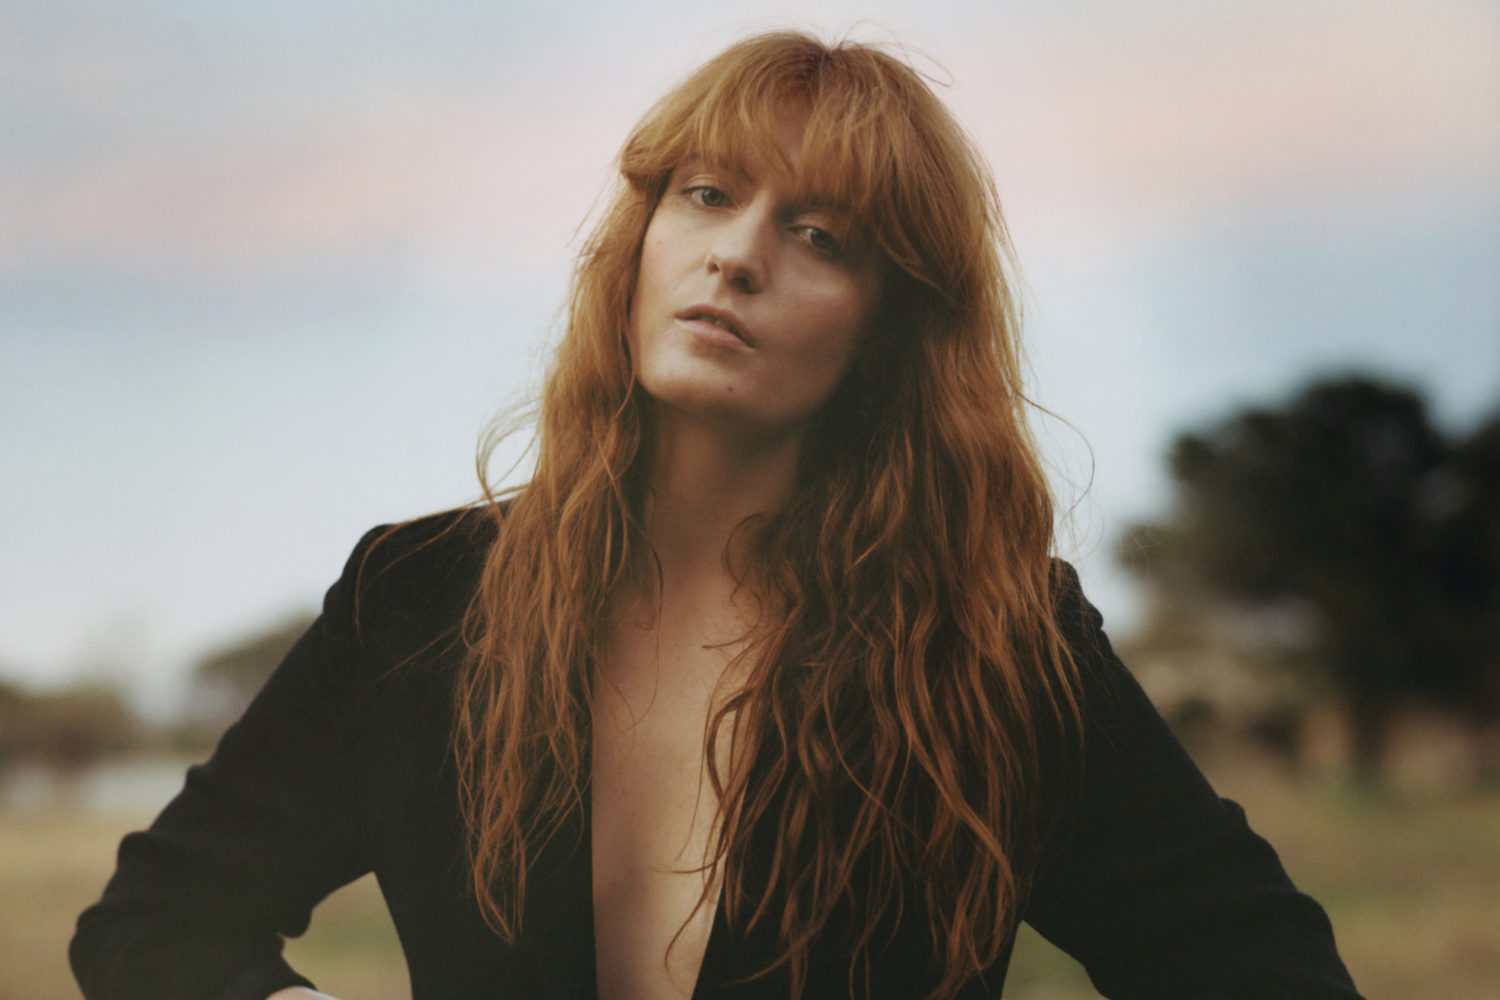 Florence + The Machine announced as Foo Fighters' replacement in Glastonbury 2015 headline slot